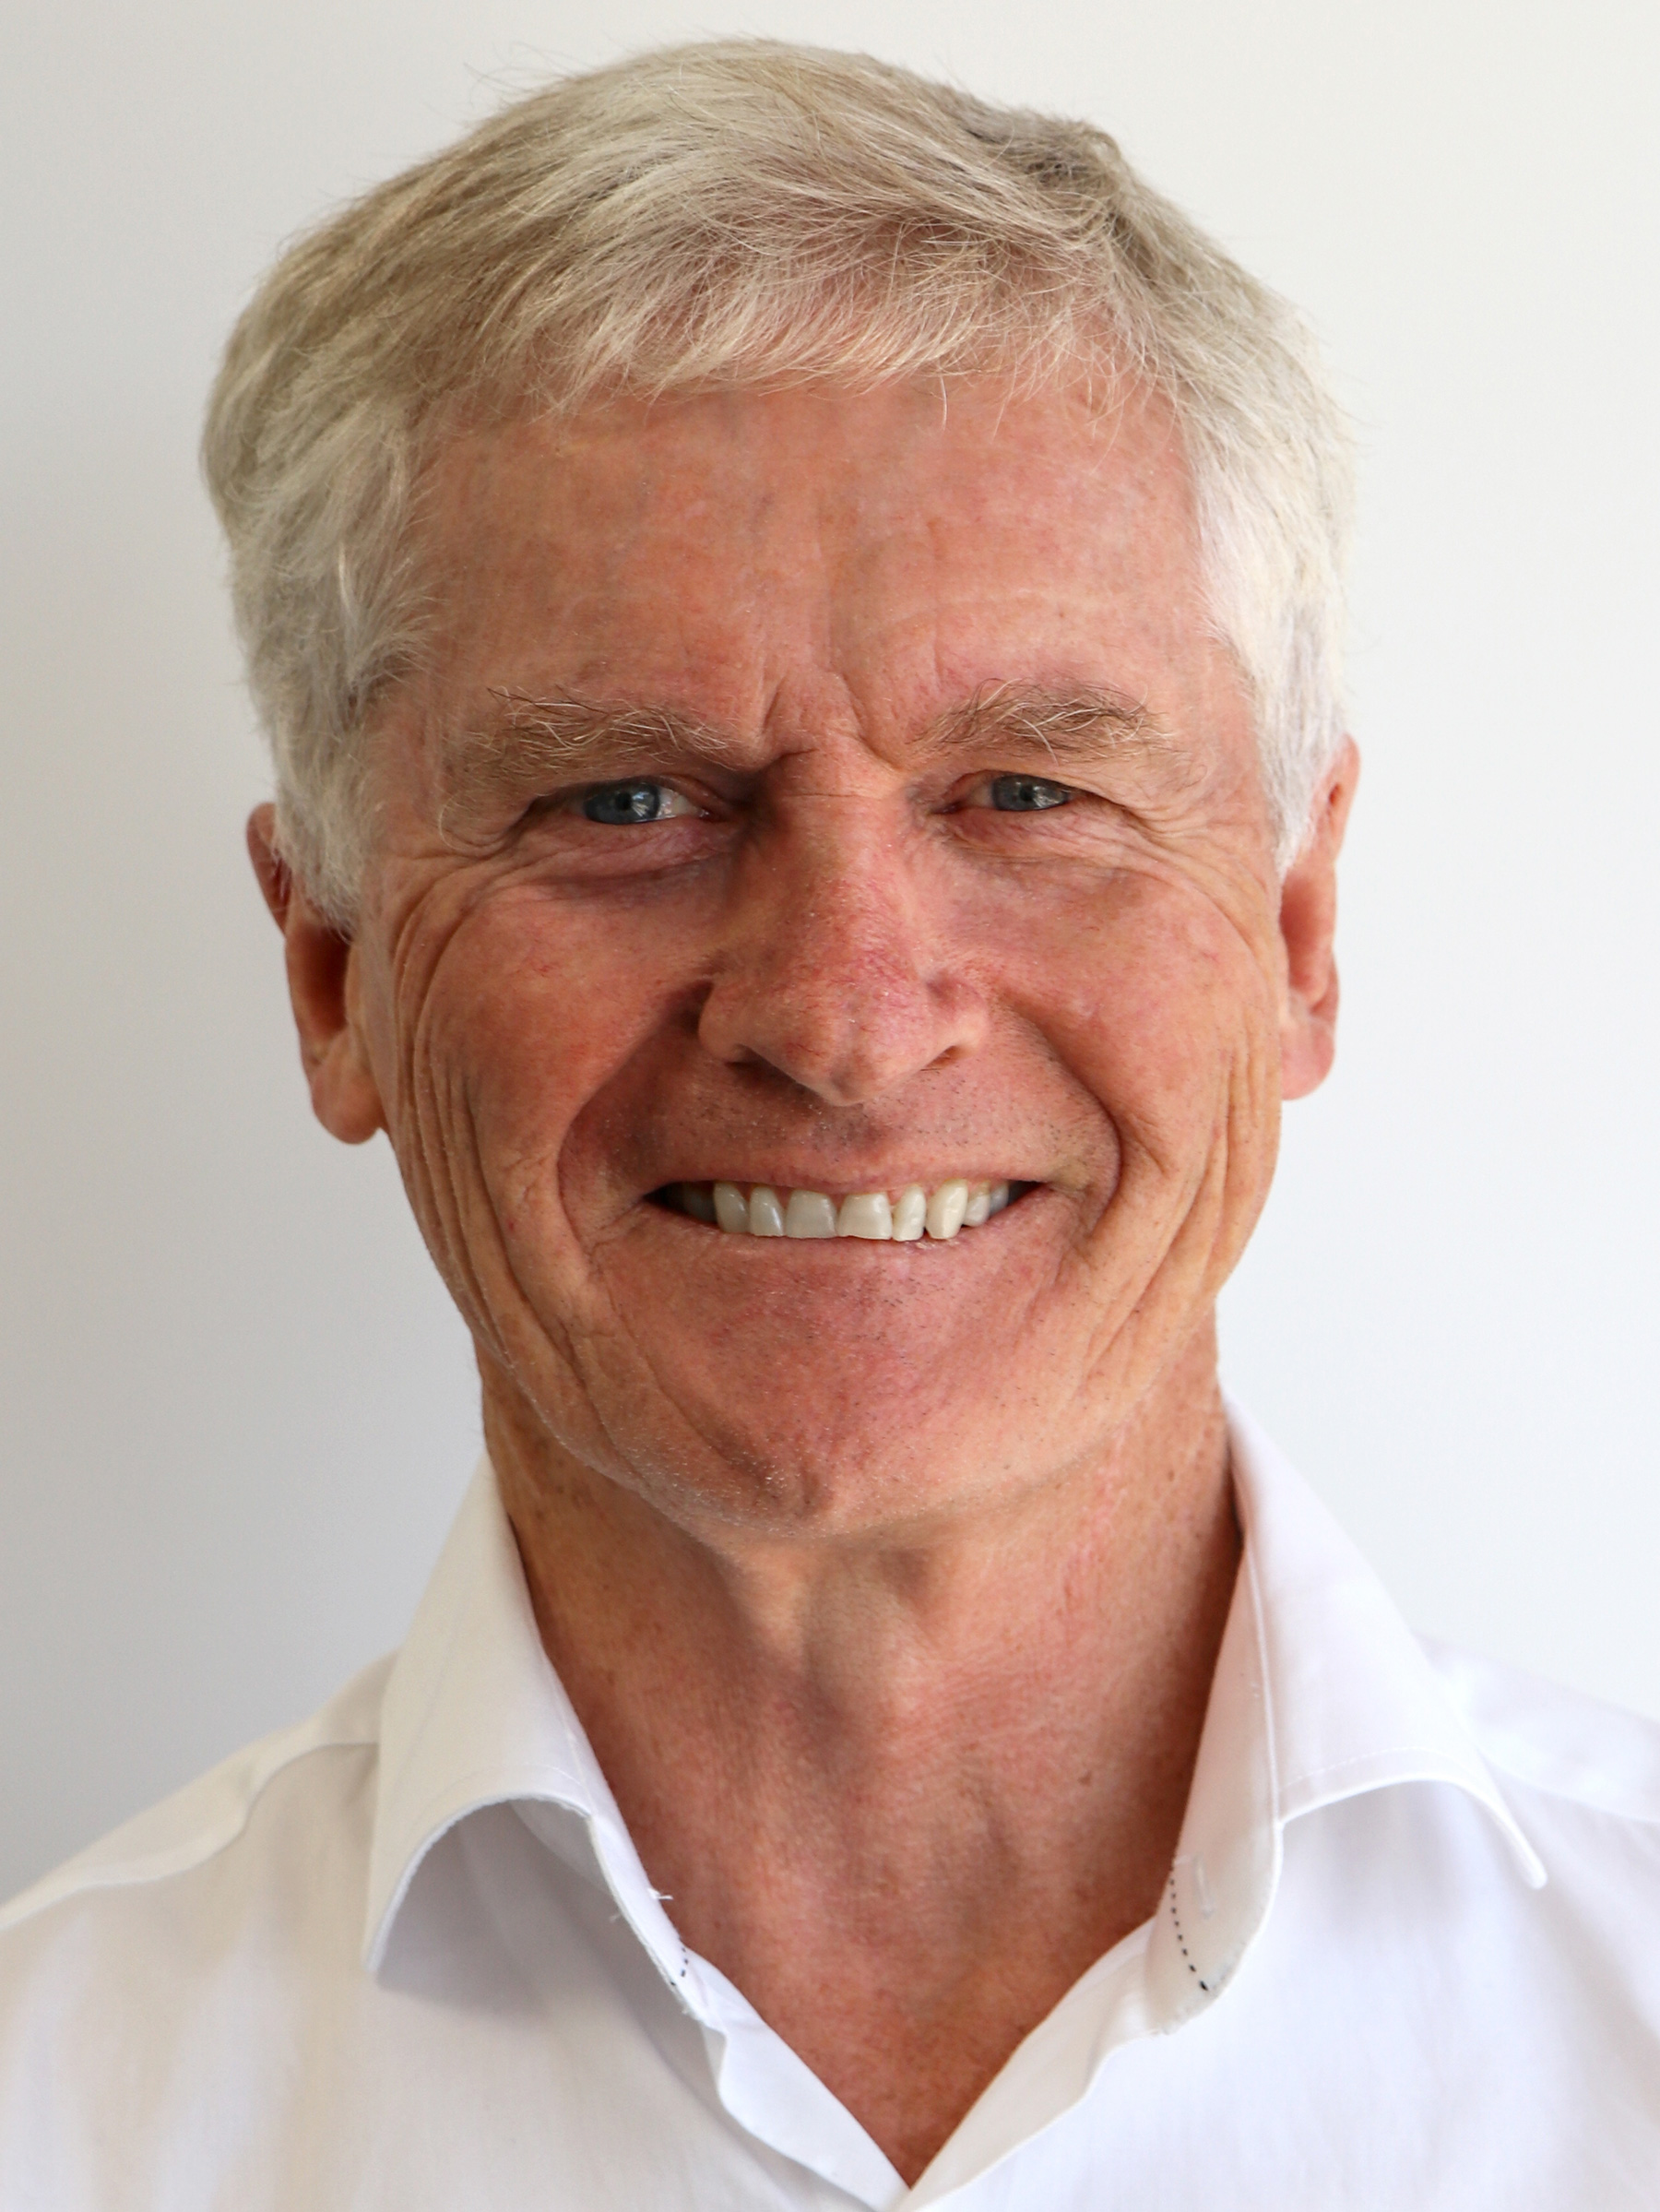 Portrait Of Mark Ryan, Board Member | Interact Australia Team